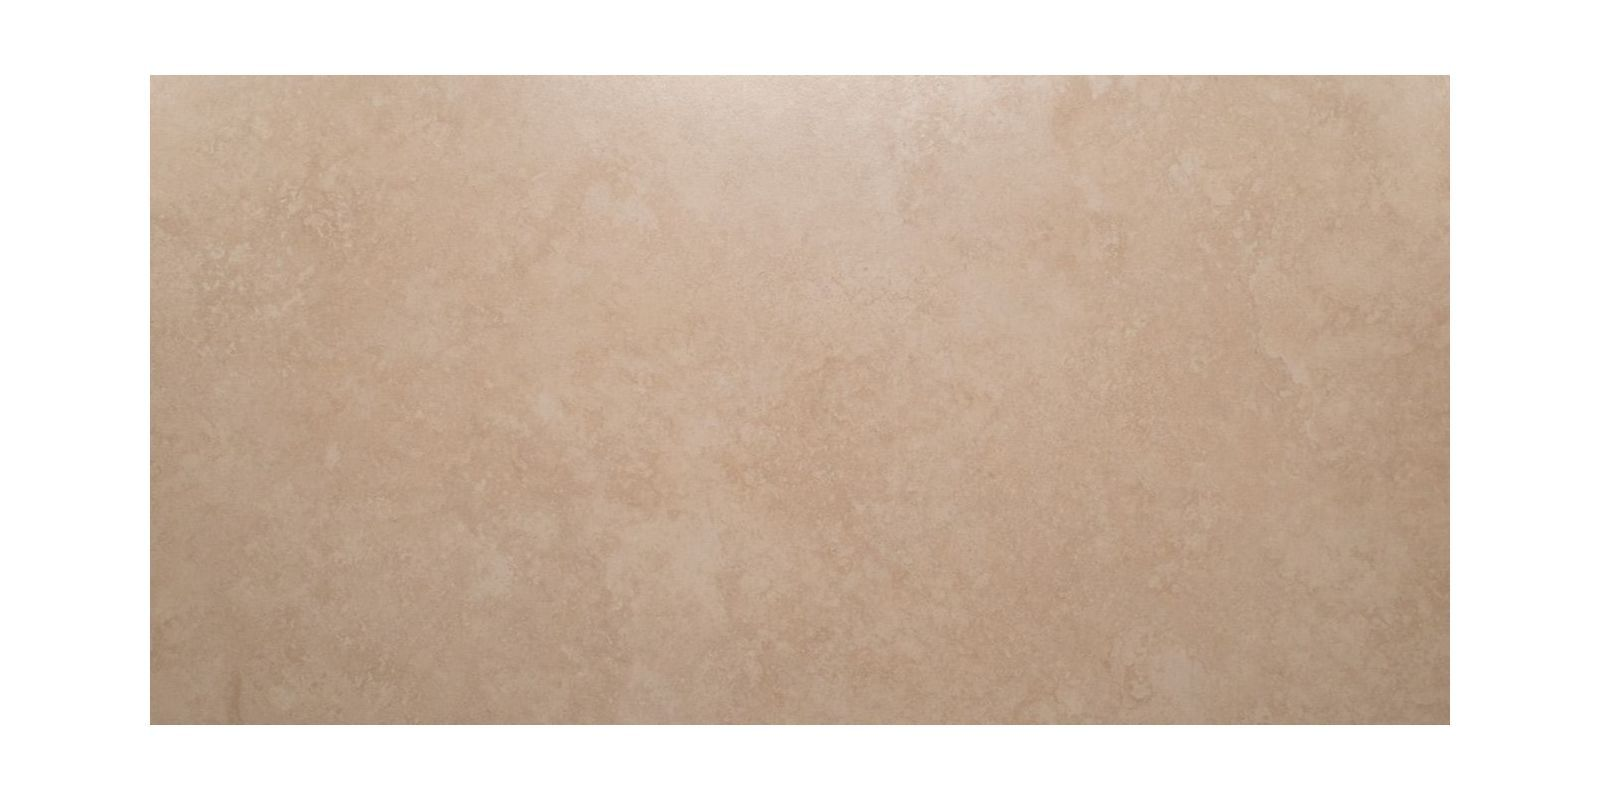 "Delacora DT-CREAMTRAVERTINE1224 Cream Travertine - 12"" X 24"" - Tile (16 SF/Carto Beige Tile Multi-Surface Tile"